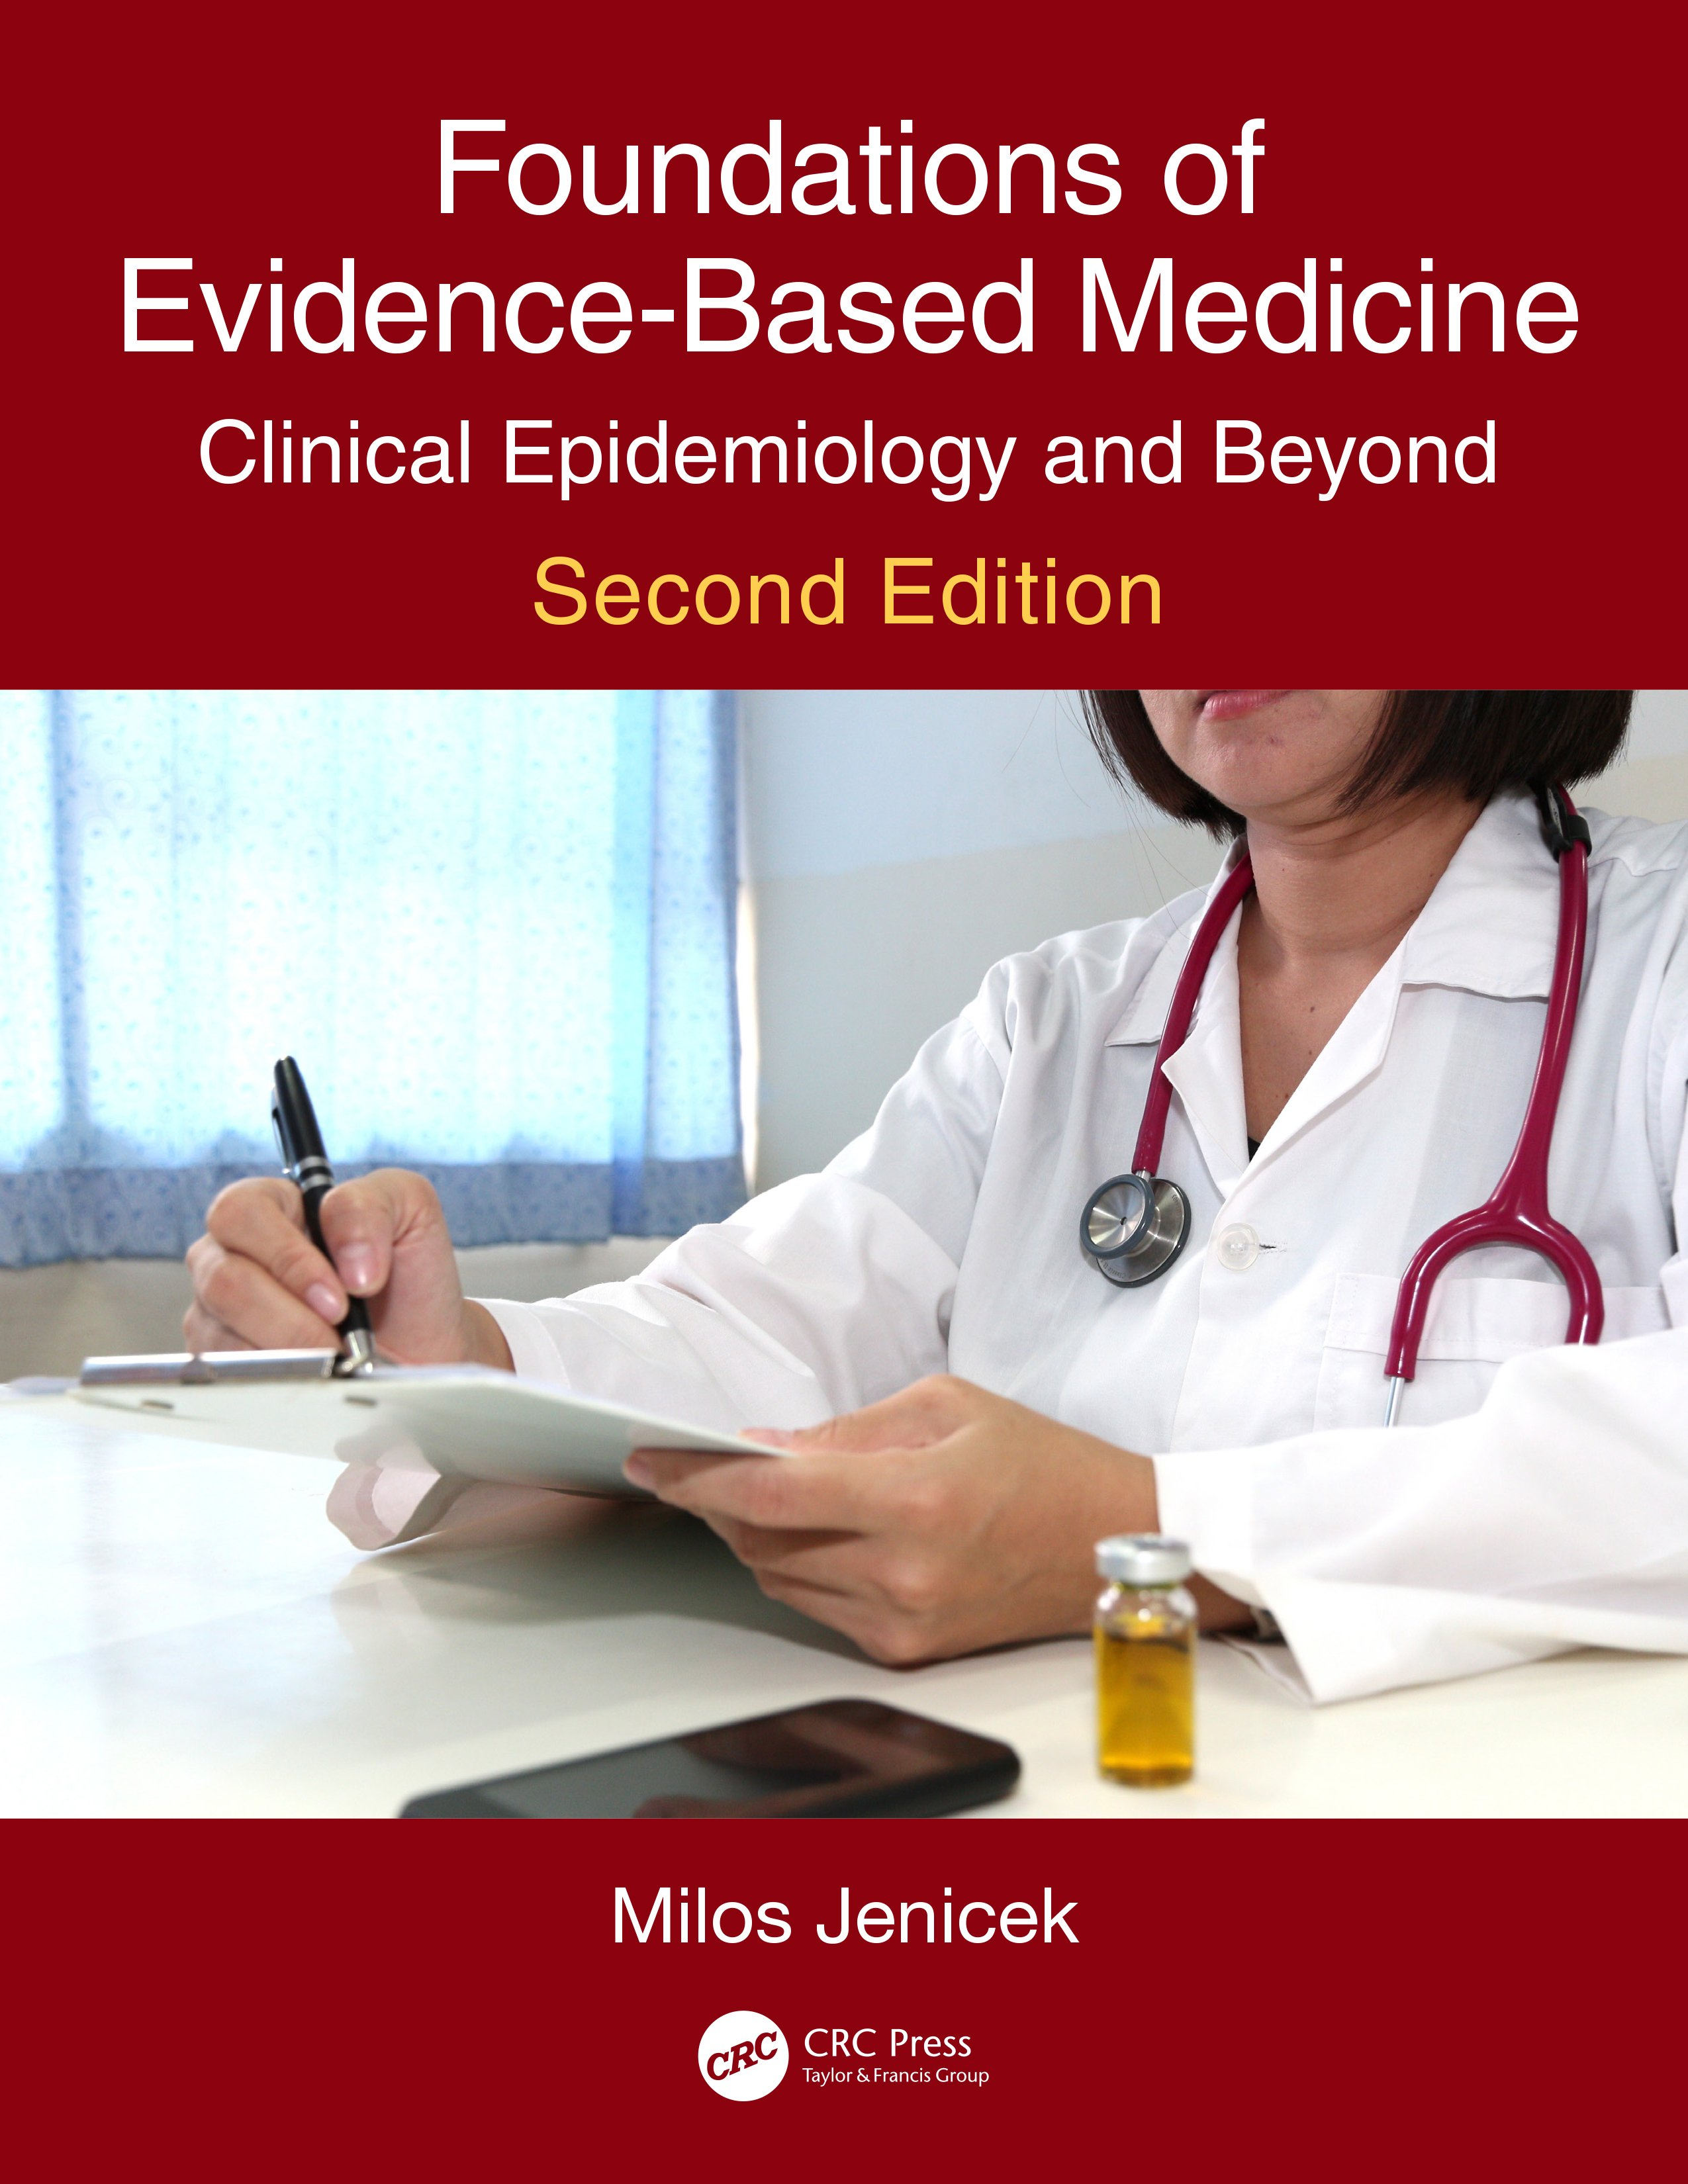 Describing what happens: Clinical case reports, case series, occurrence studies